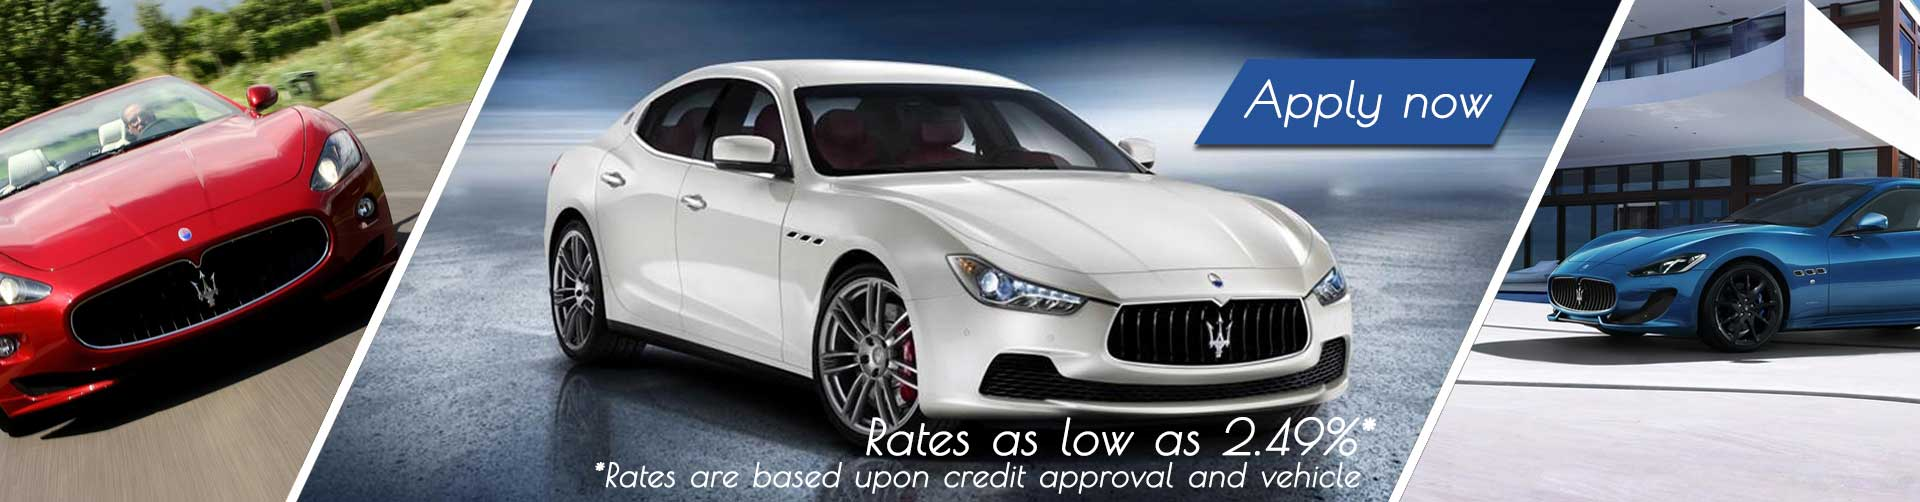 apply now rates as low as 2.49%. rates are based upon credit approval and vehicle.